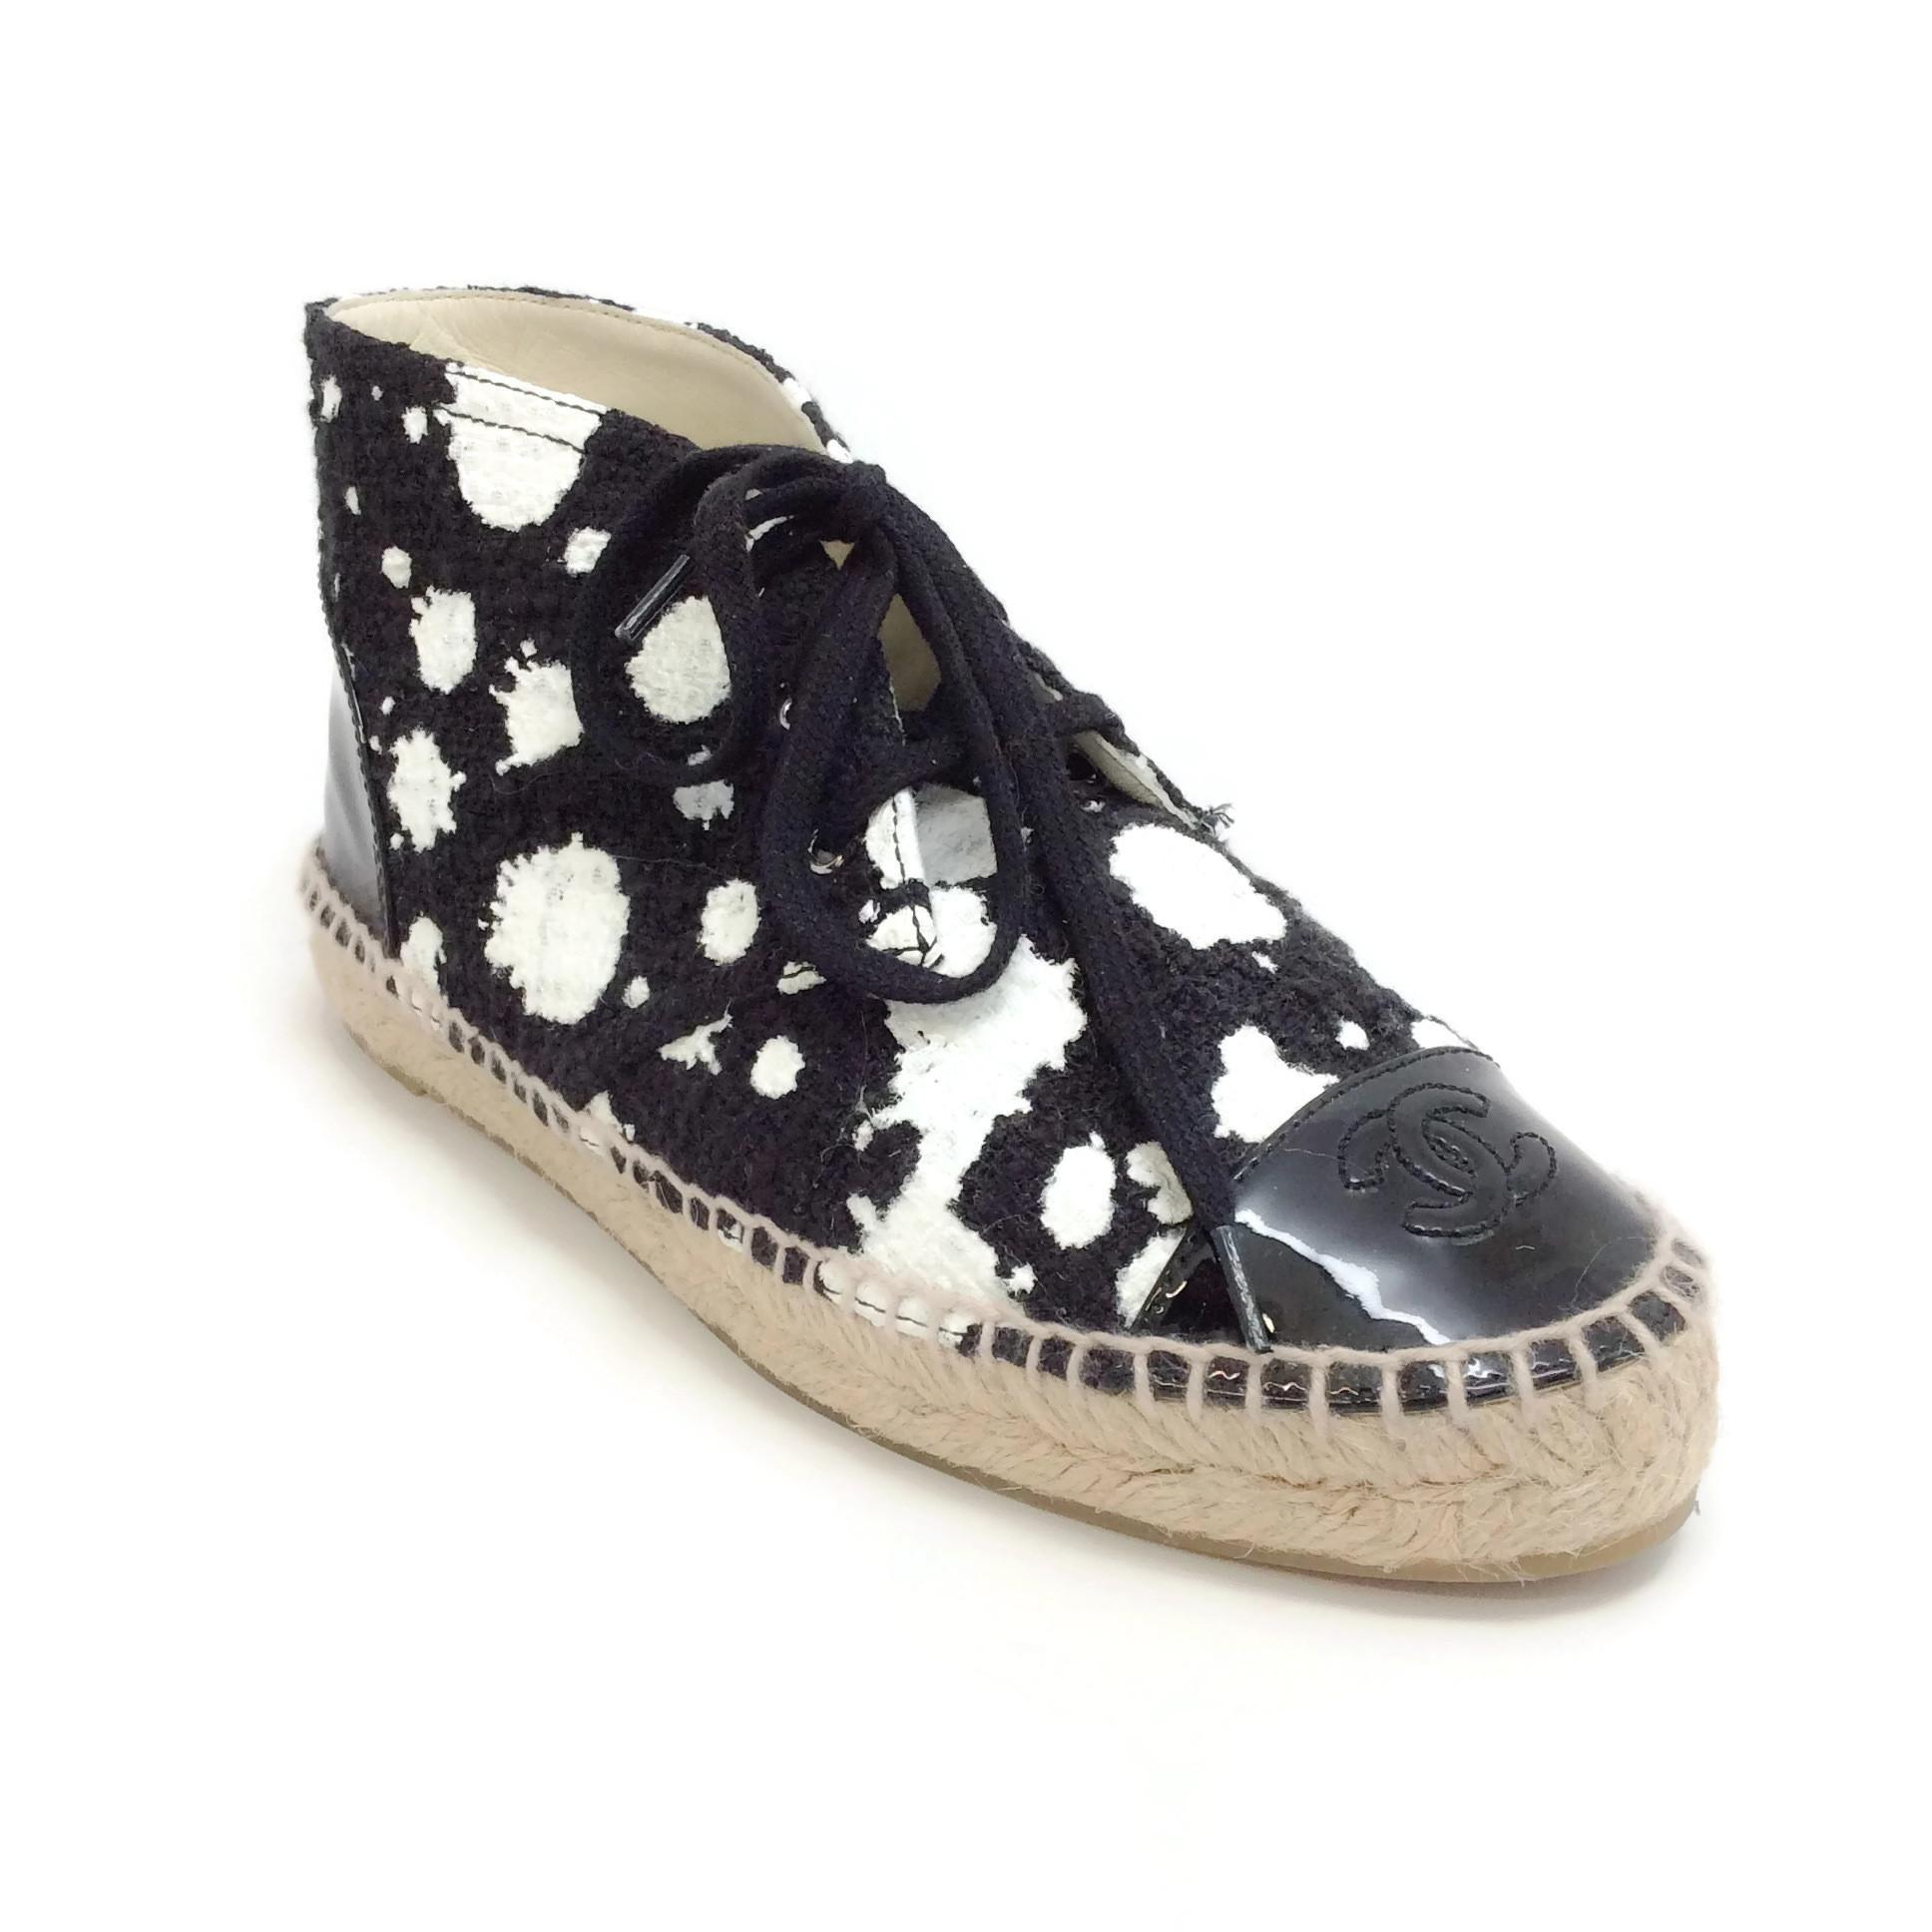 Chanel Shoes On Sale Up To 70 Off At Tradesy